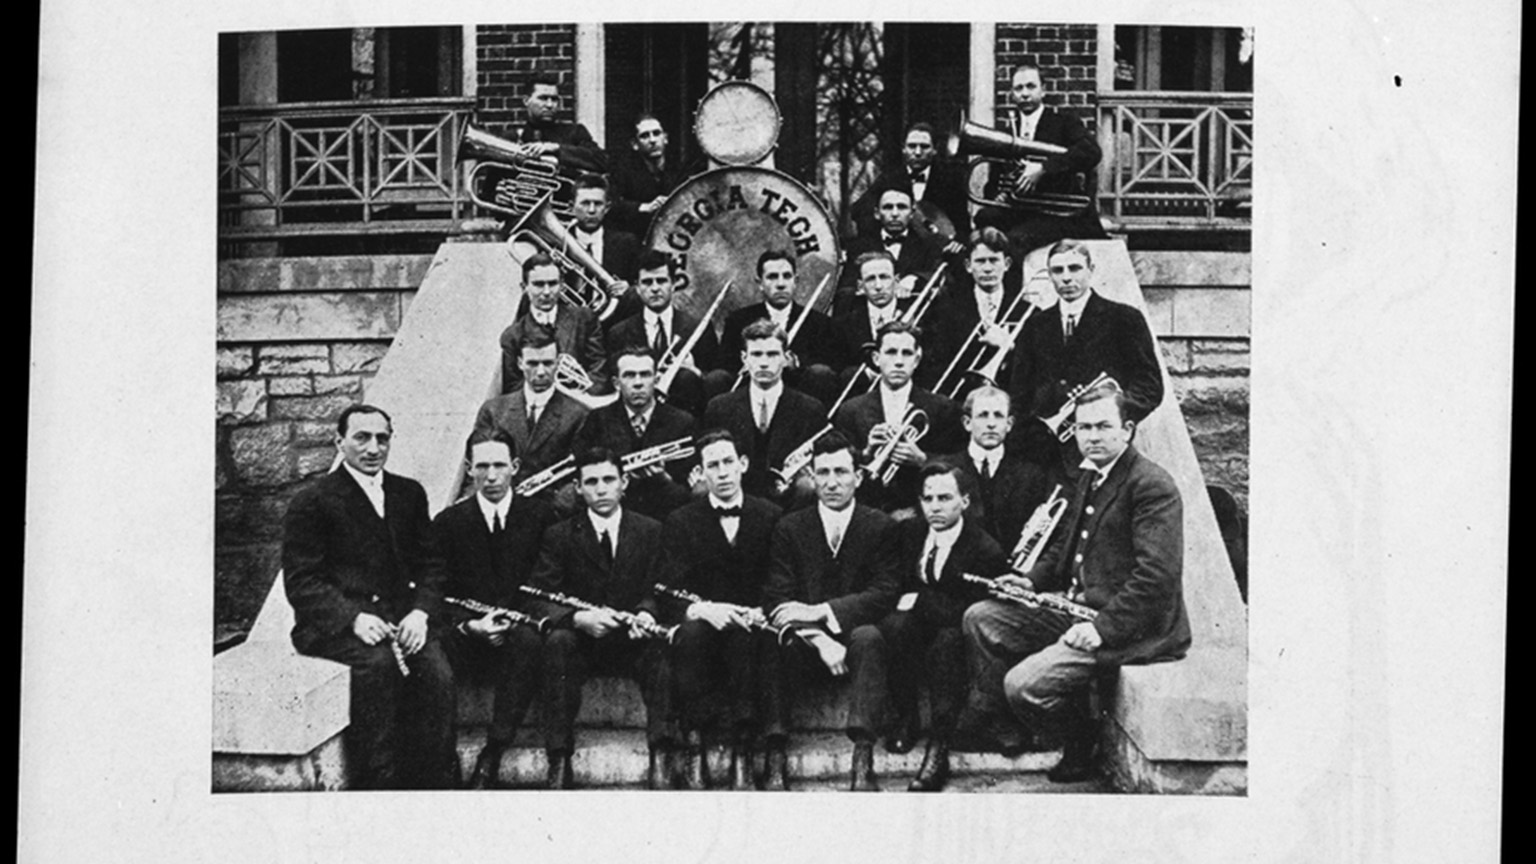 Members of the band posing on steps with their instruments while wearing dark suits.